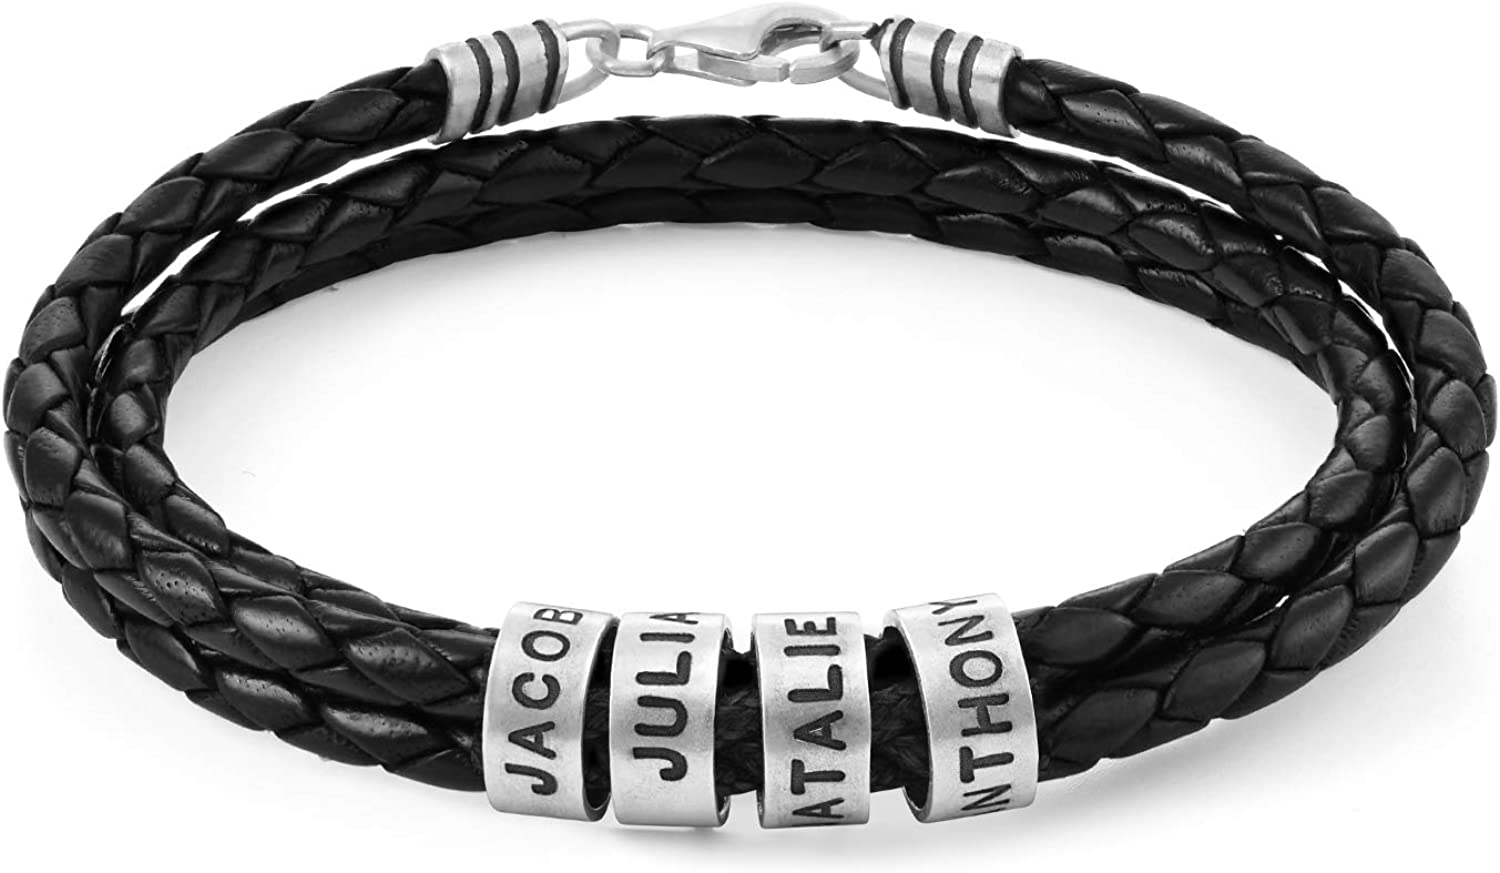 MyNameNecklace Personalized Sterling Silver Men Braid Black Bracelet with Small Custom Beads Wax or Leather- Father's Day Men Gift